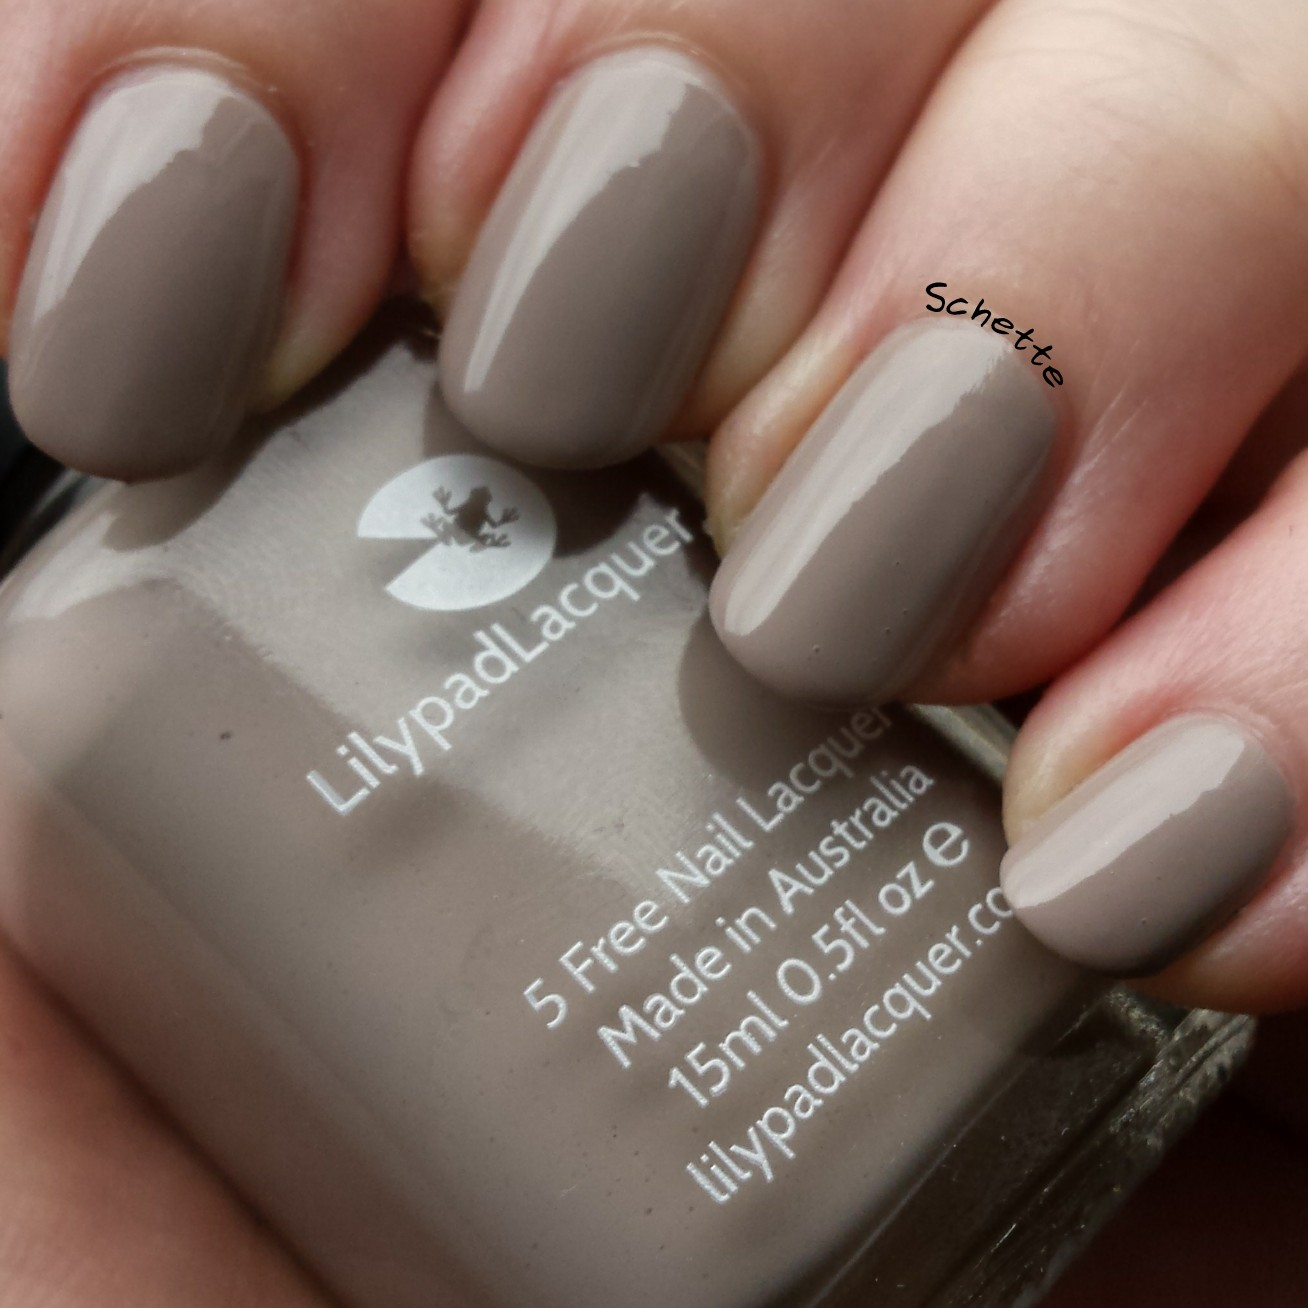 Lilypad Lacquer : The Nude and Neutral Collection Part 1